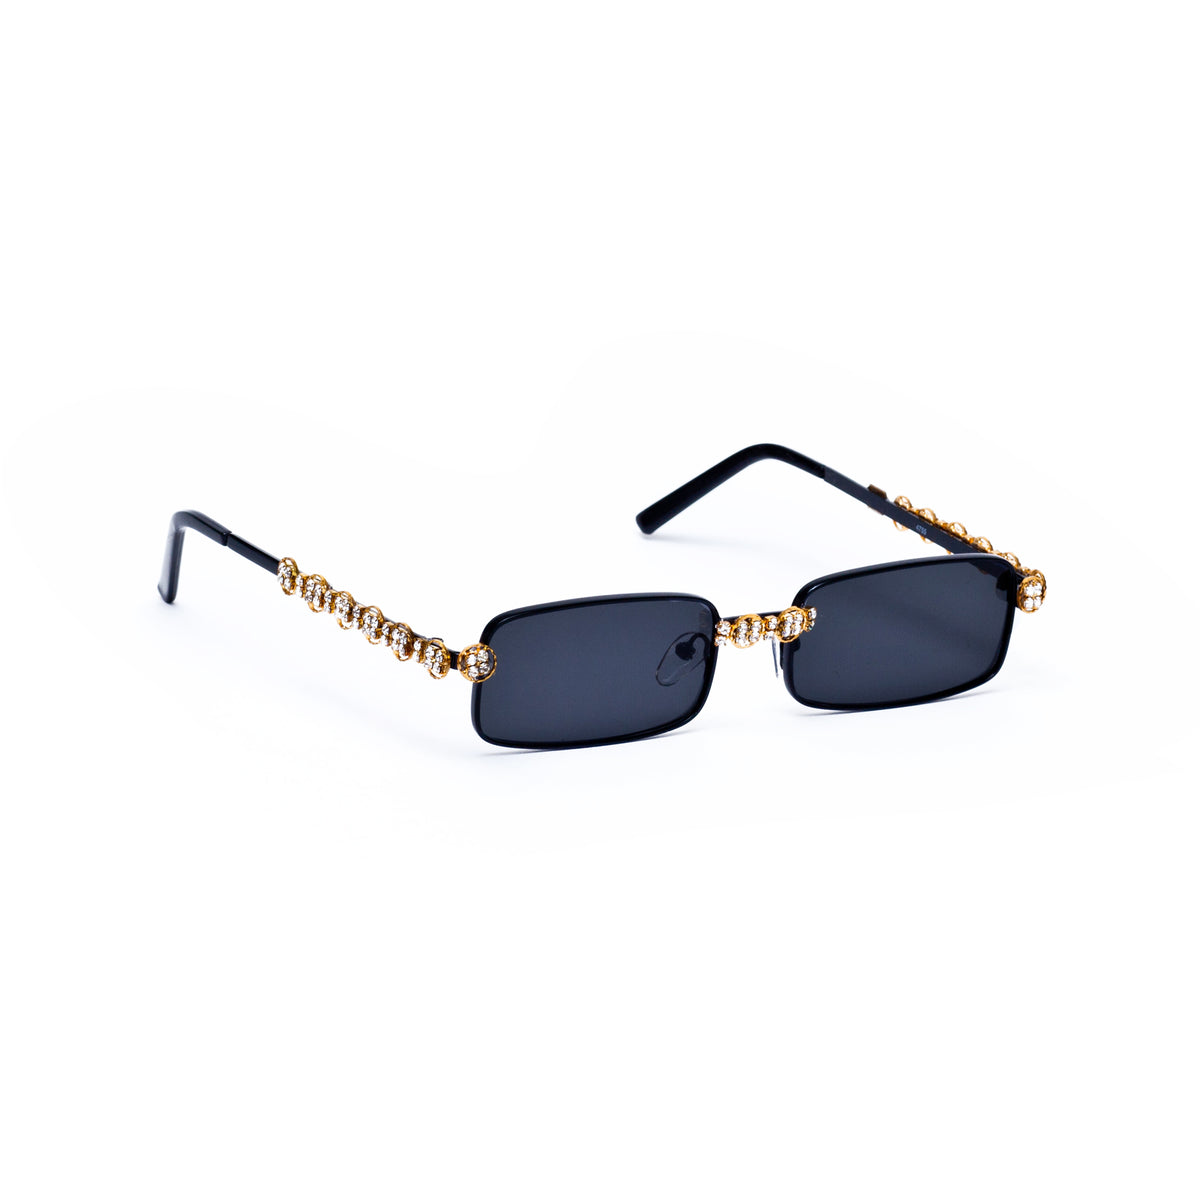 All About The Benjamins - Black Out Edition  SUNNIES + OPTICS Sunglasses Collection- NRODA